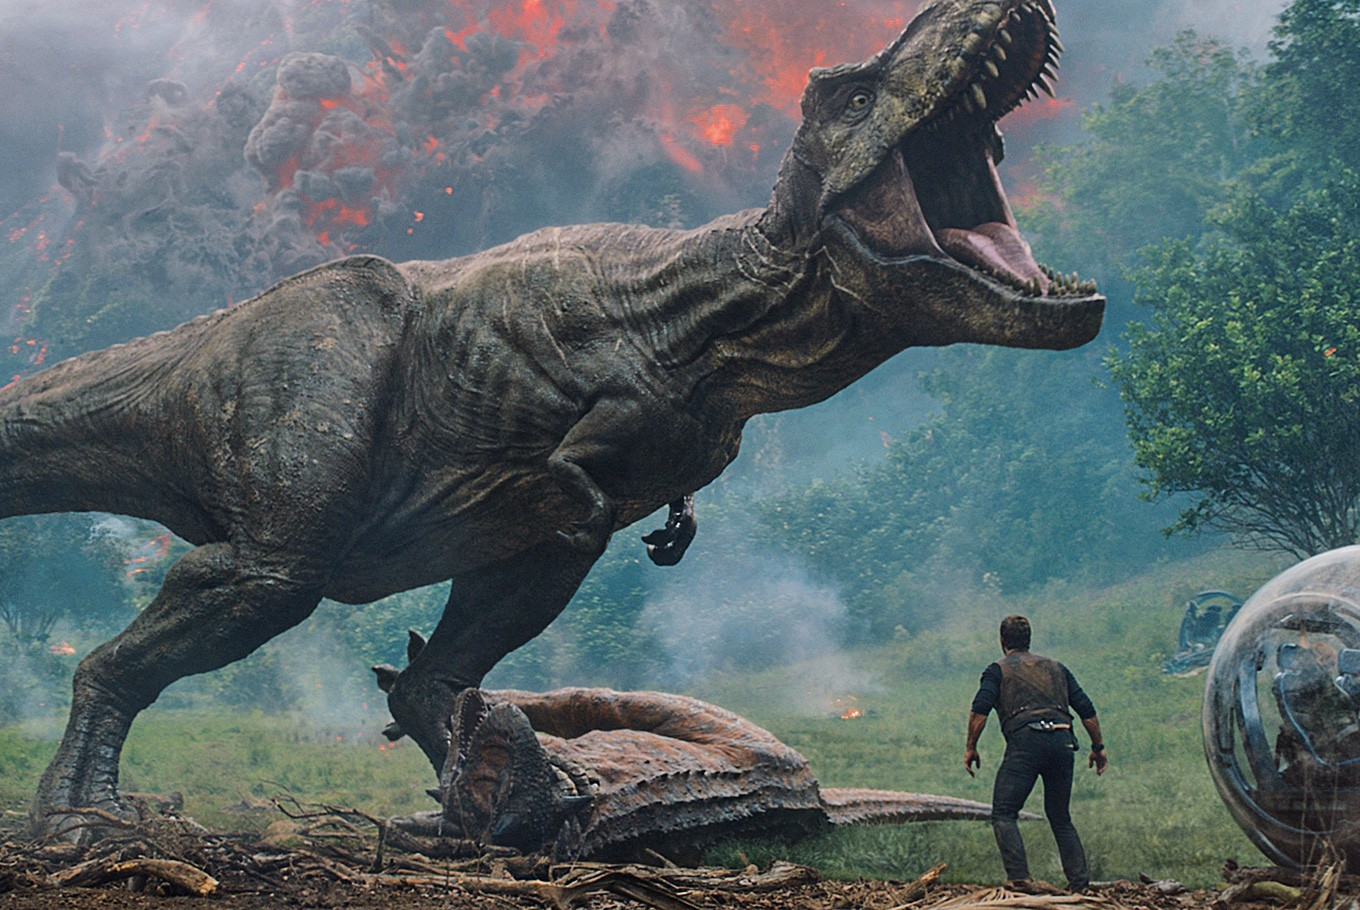 'Jurassic' dinos shake earth, boost North American box office